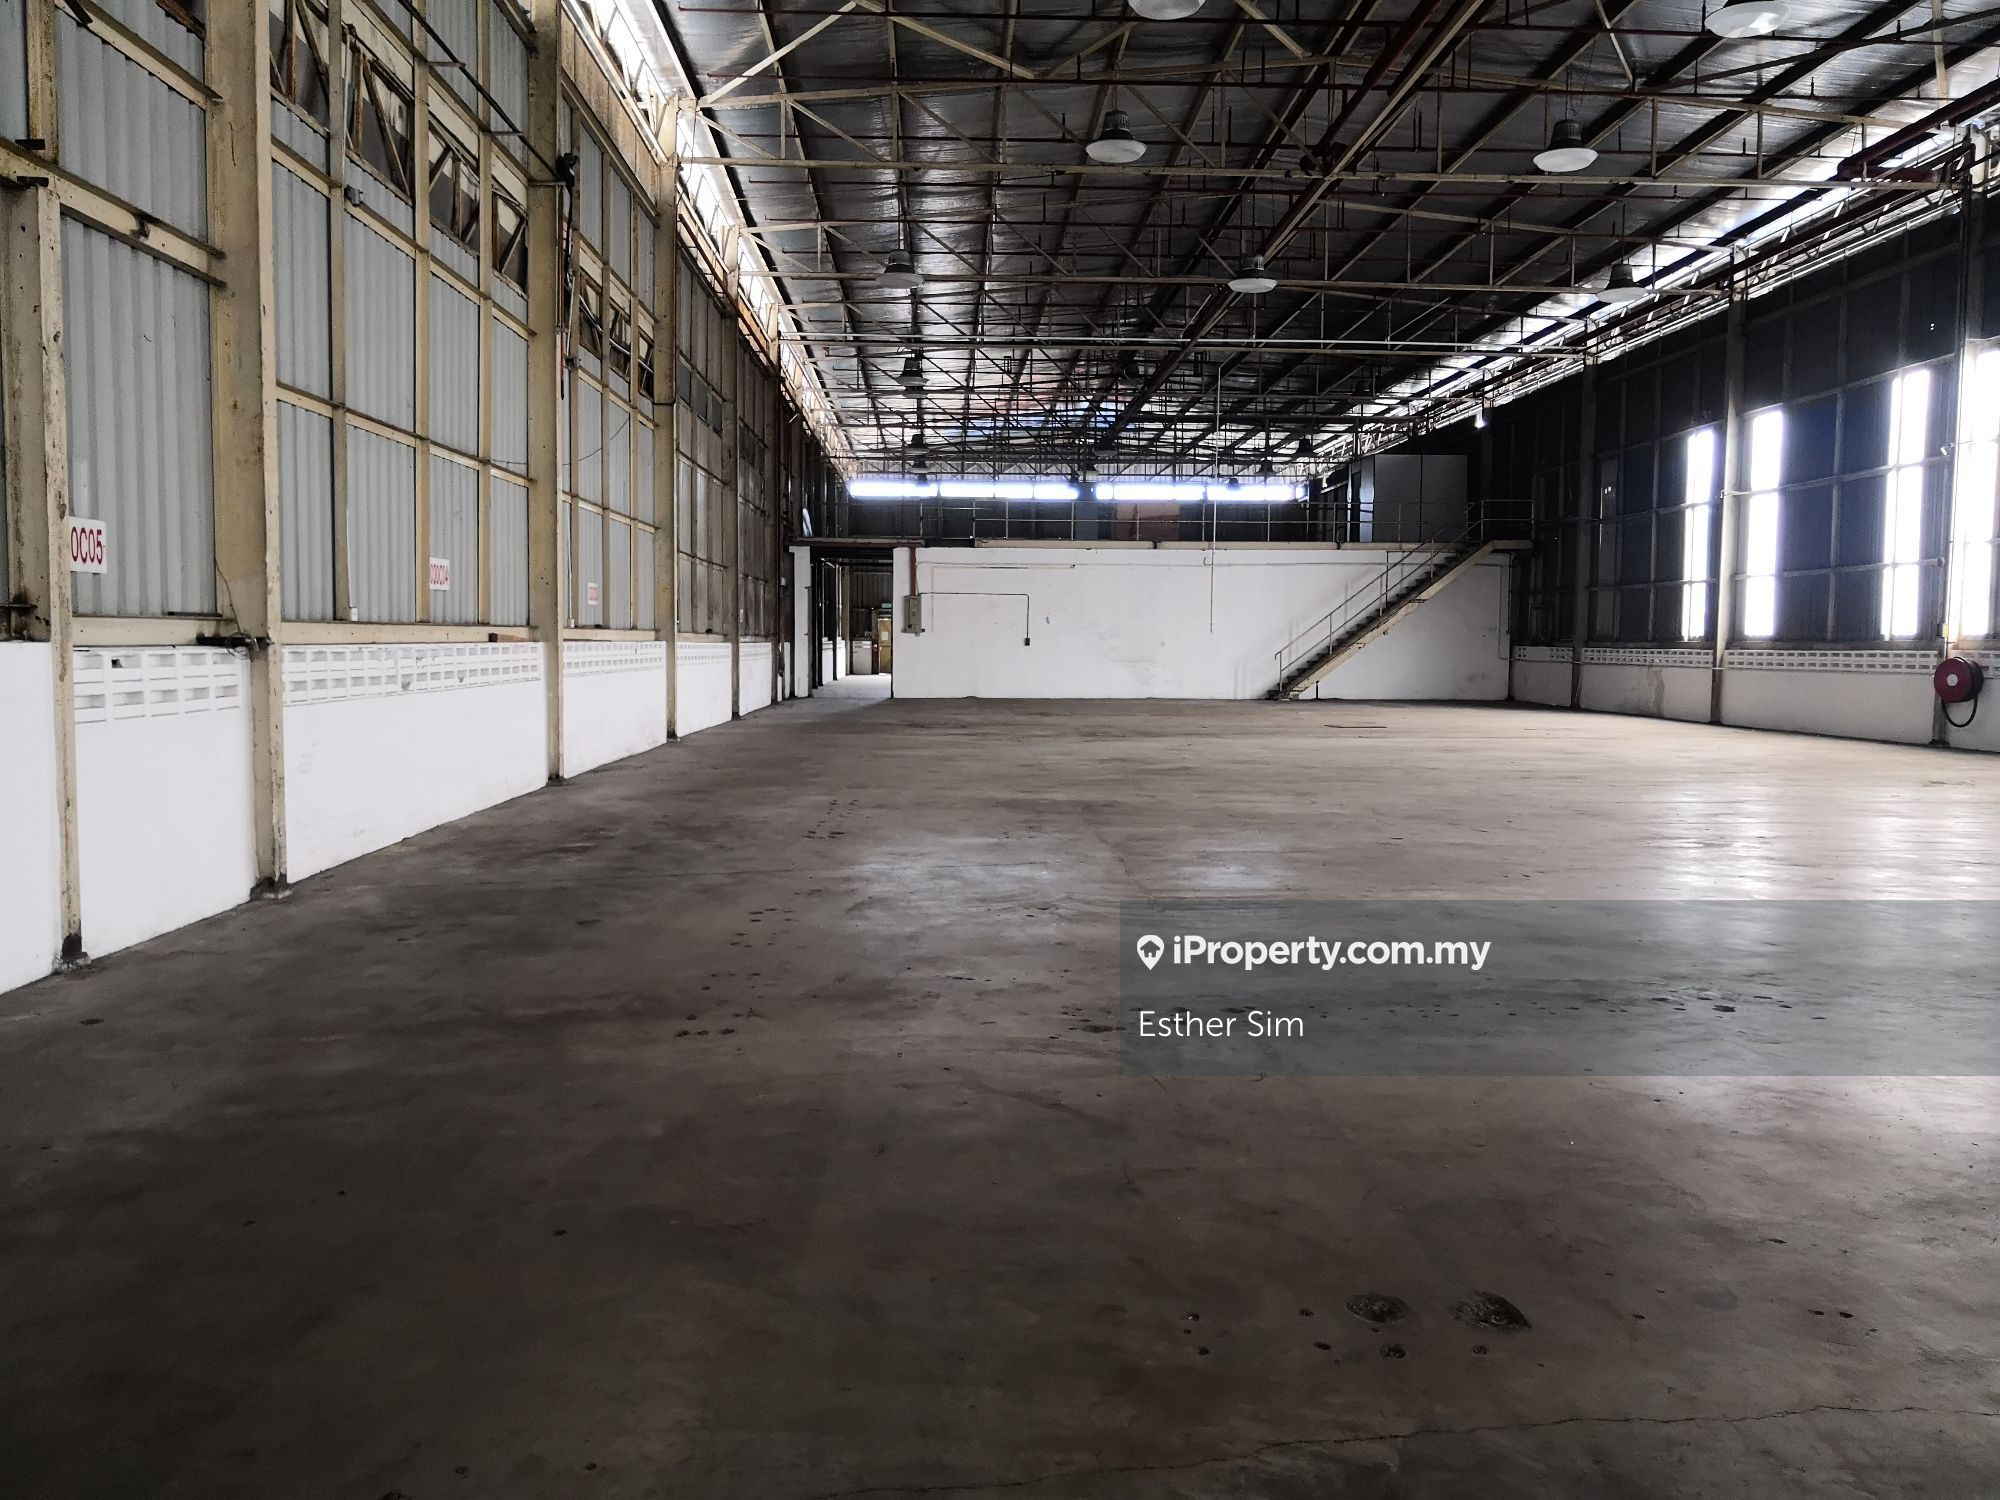 Detached warehouse in Kulim Industry, Kulim Industry, Kulim